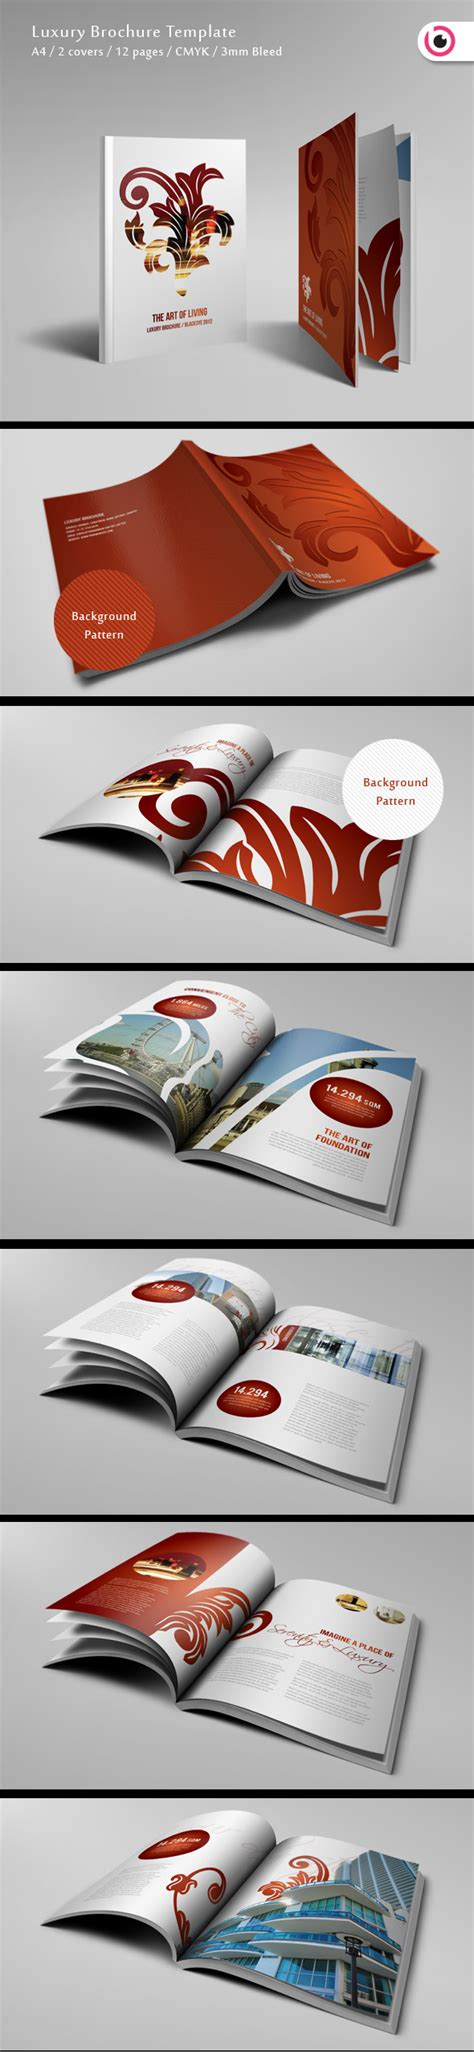 Luxury Brochure Template by 30 Brochure Design Inspirations Web3mantra